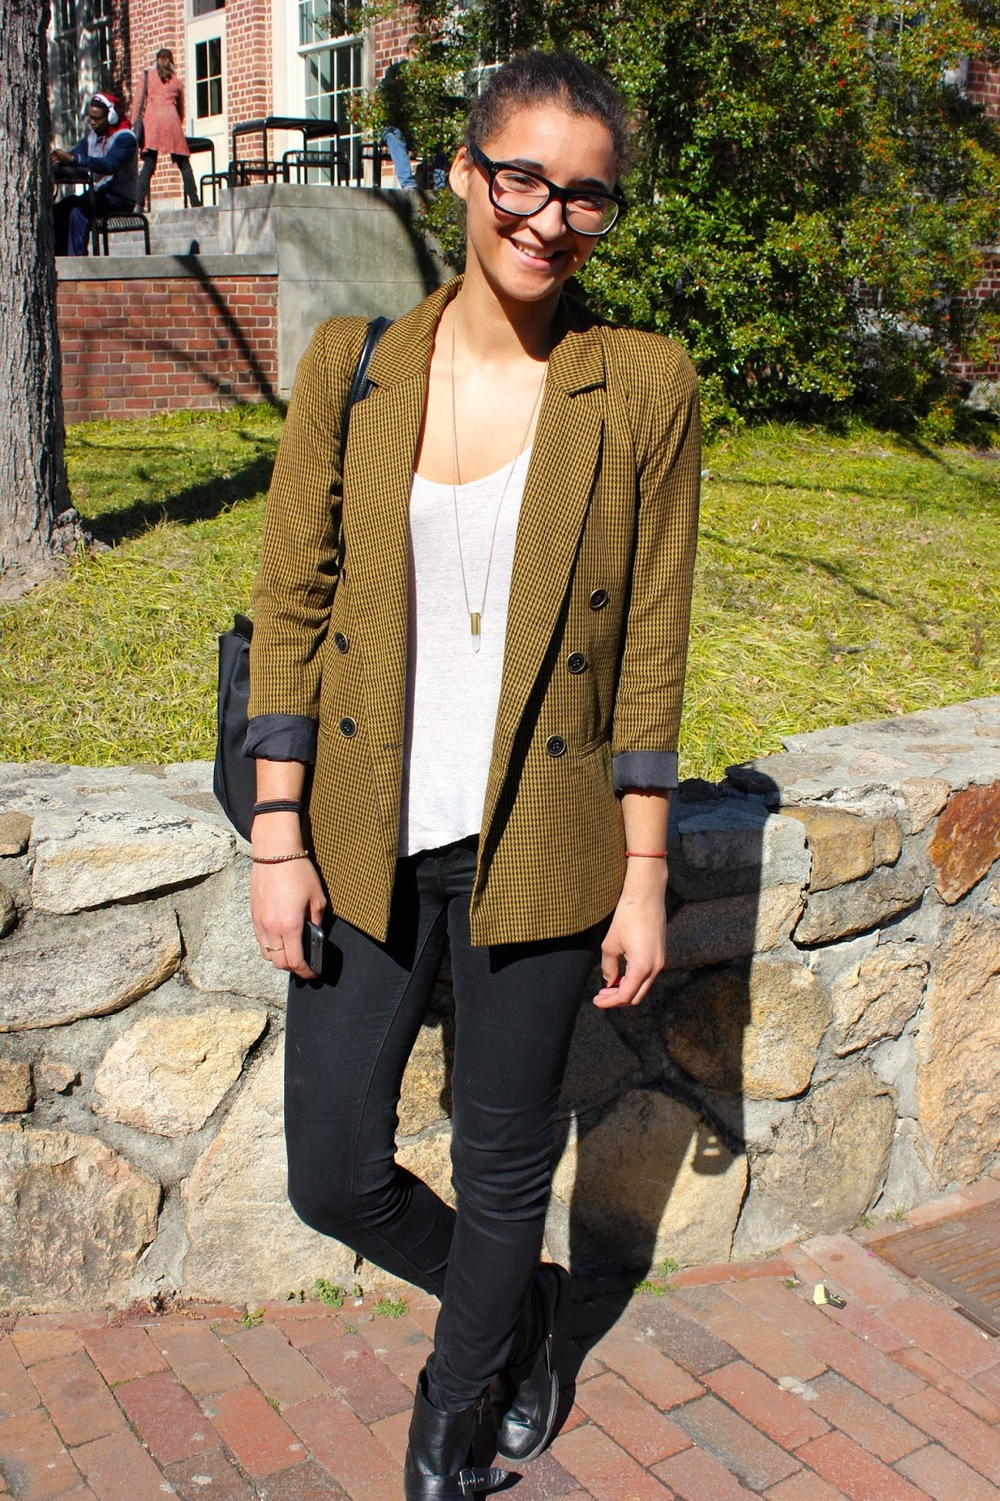 University of North Carolina in Chapel Hill student wears a vintage black and yellow houndstooth tweed blazer sleeves rolled up over a simple white scoop neck tee slim black jeans and black leather combat boots.